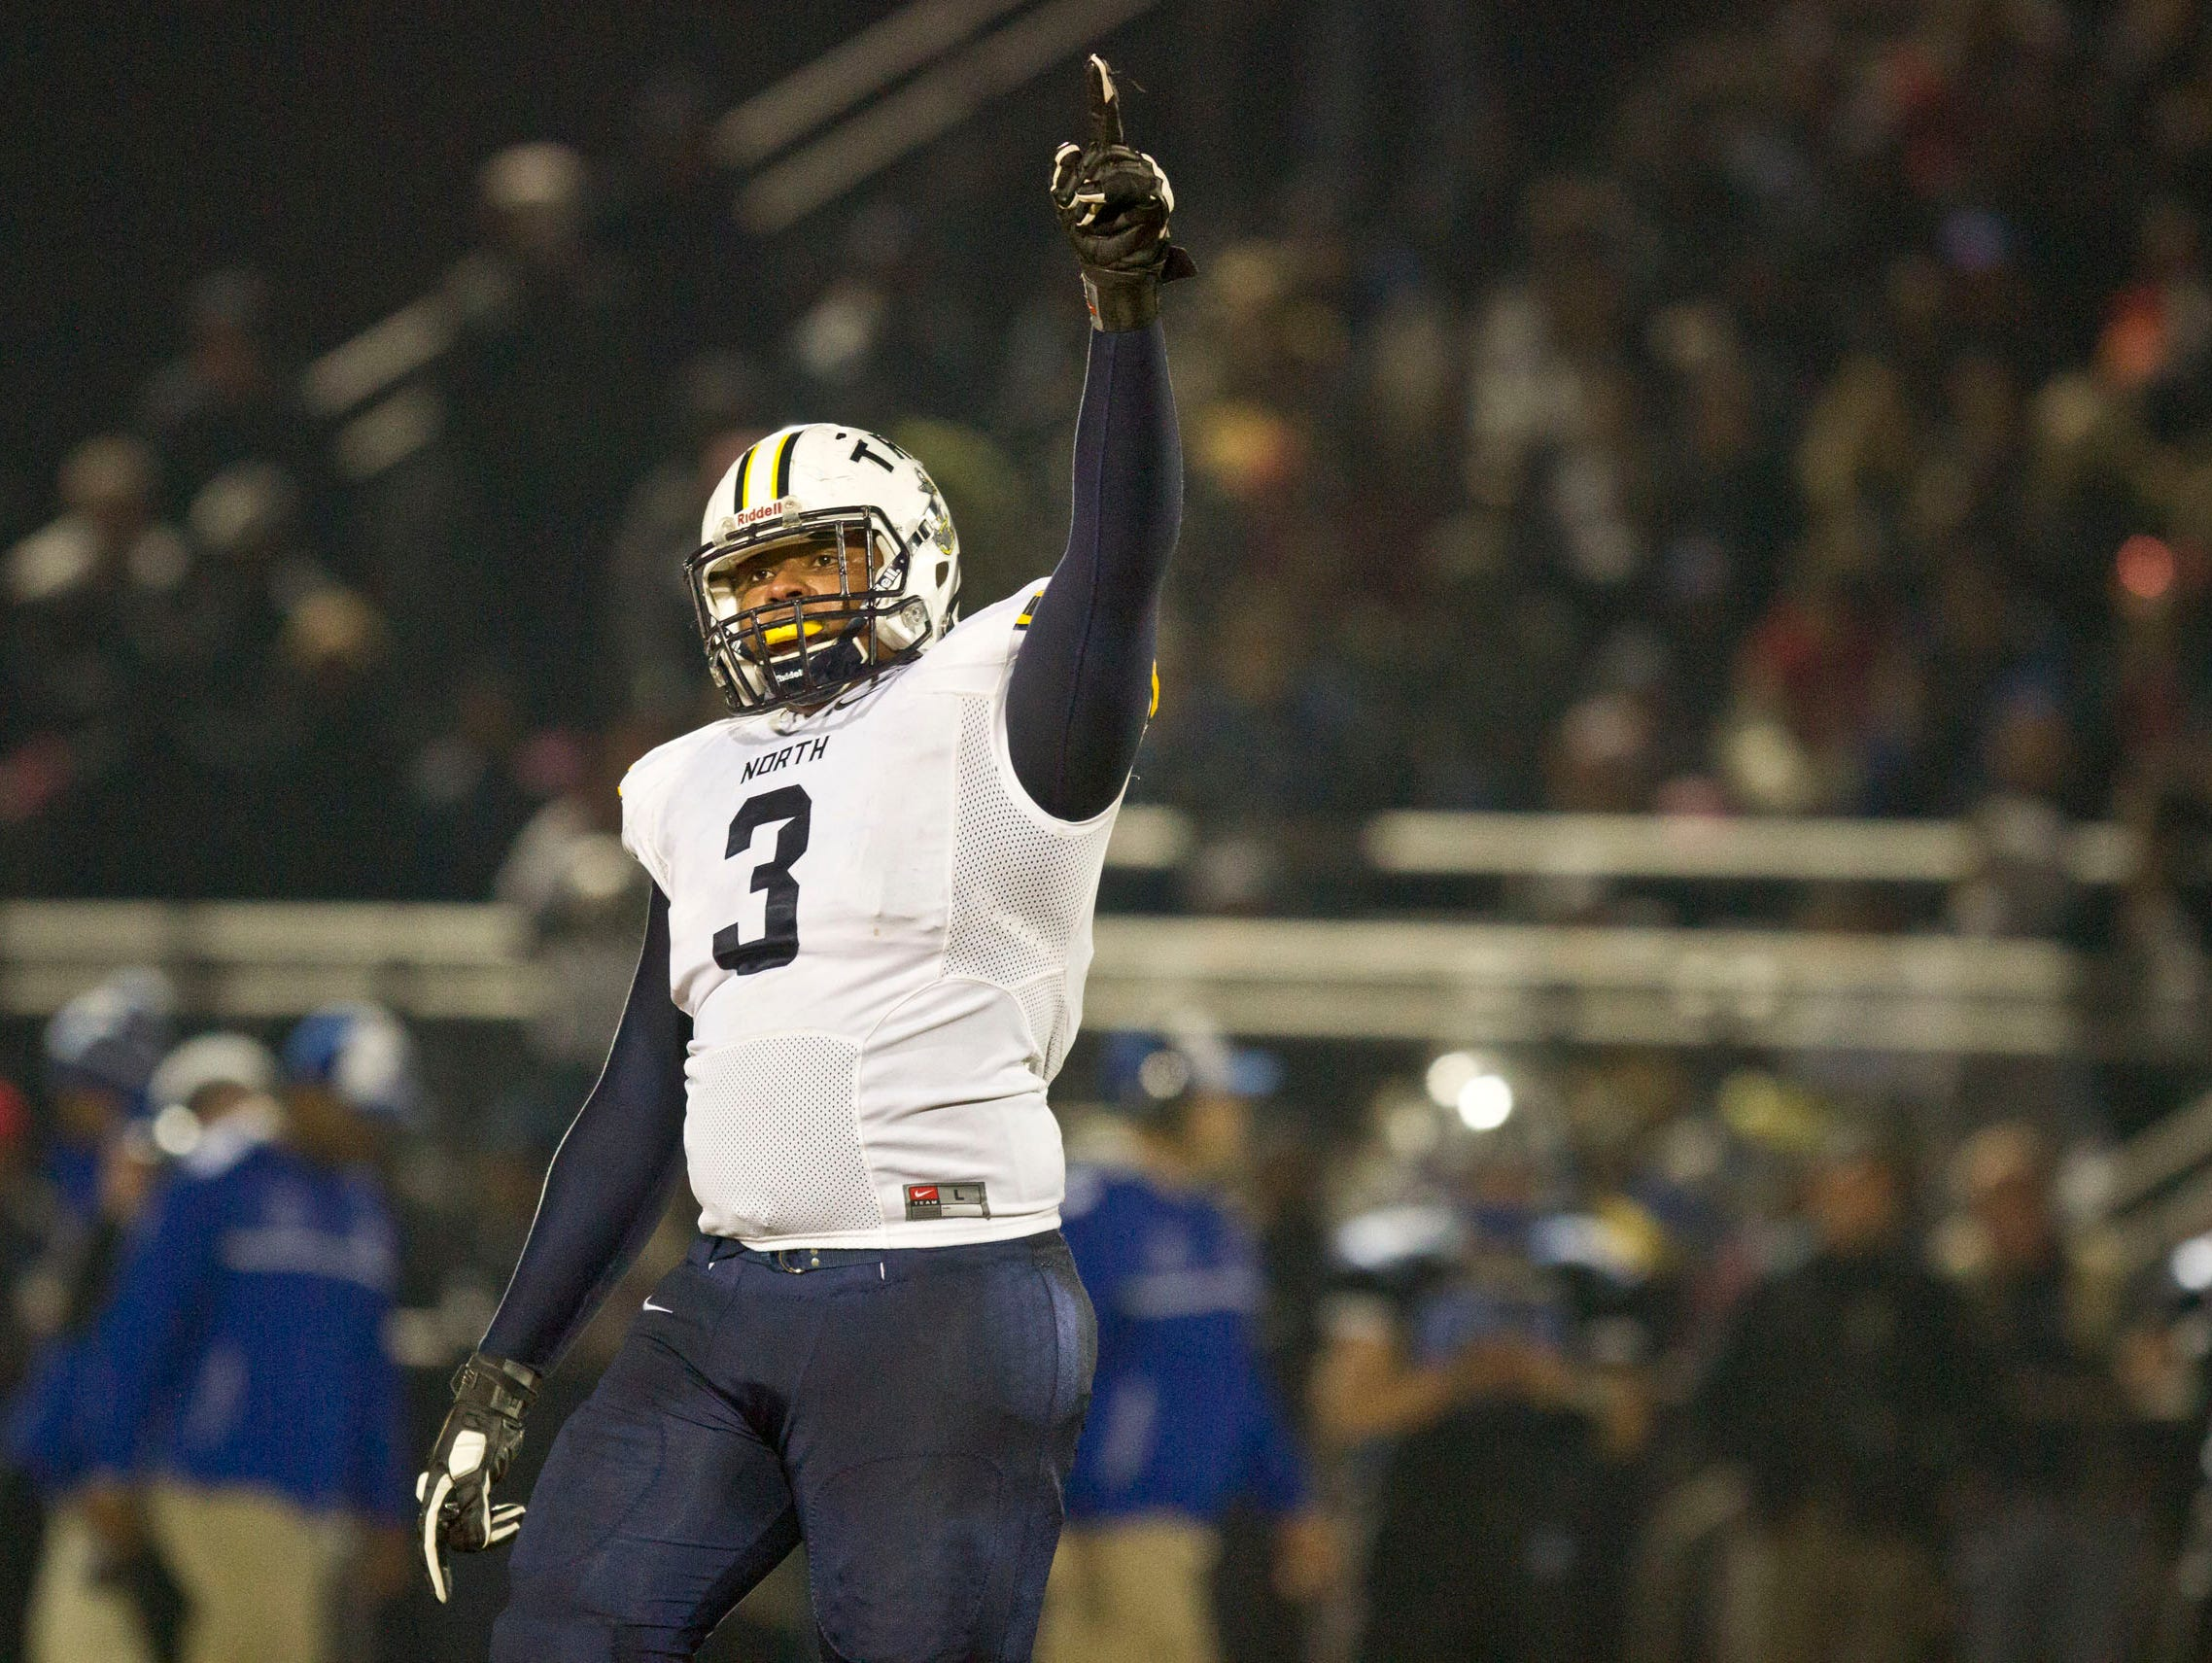 Toms River North's Kayin DaCruz reacts after making a tackle. Toms River North defeats Williamstown for the NJSIAA Group V State Championship title. Glassboro, NJ Saturday, December 5, 2015 @dhoodhood